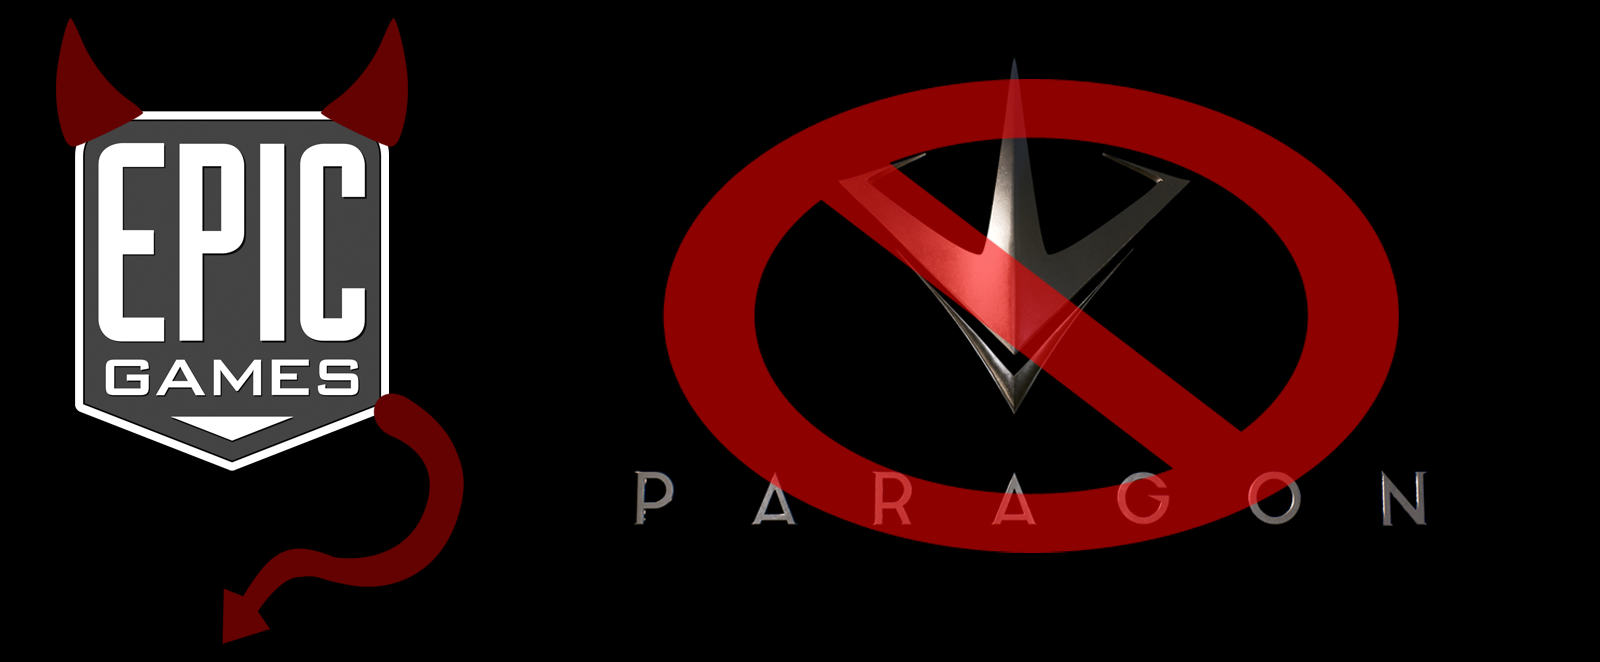 Shut Down Paragon